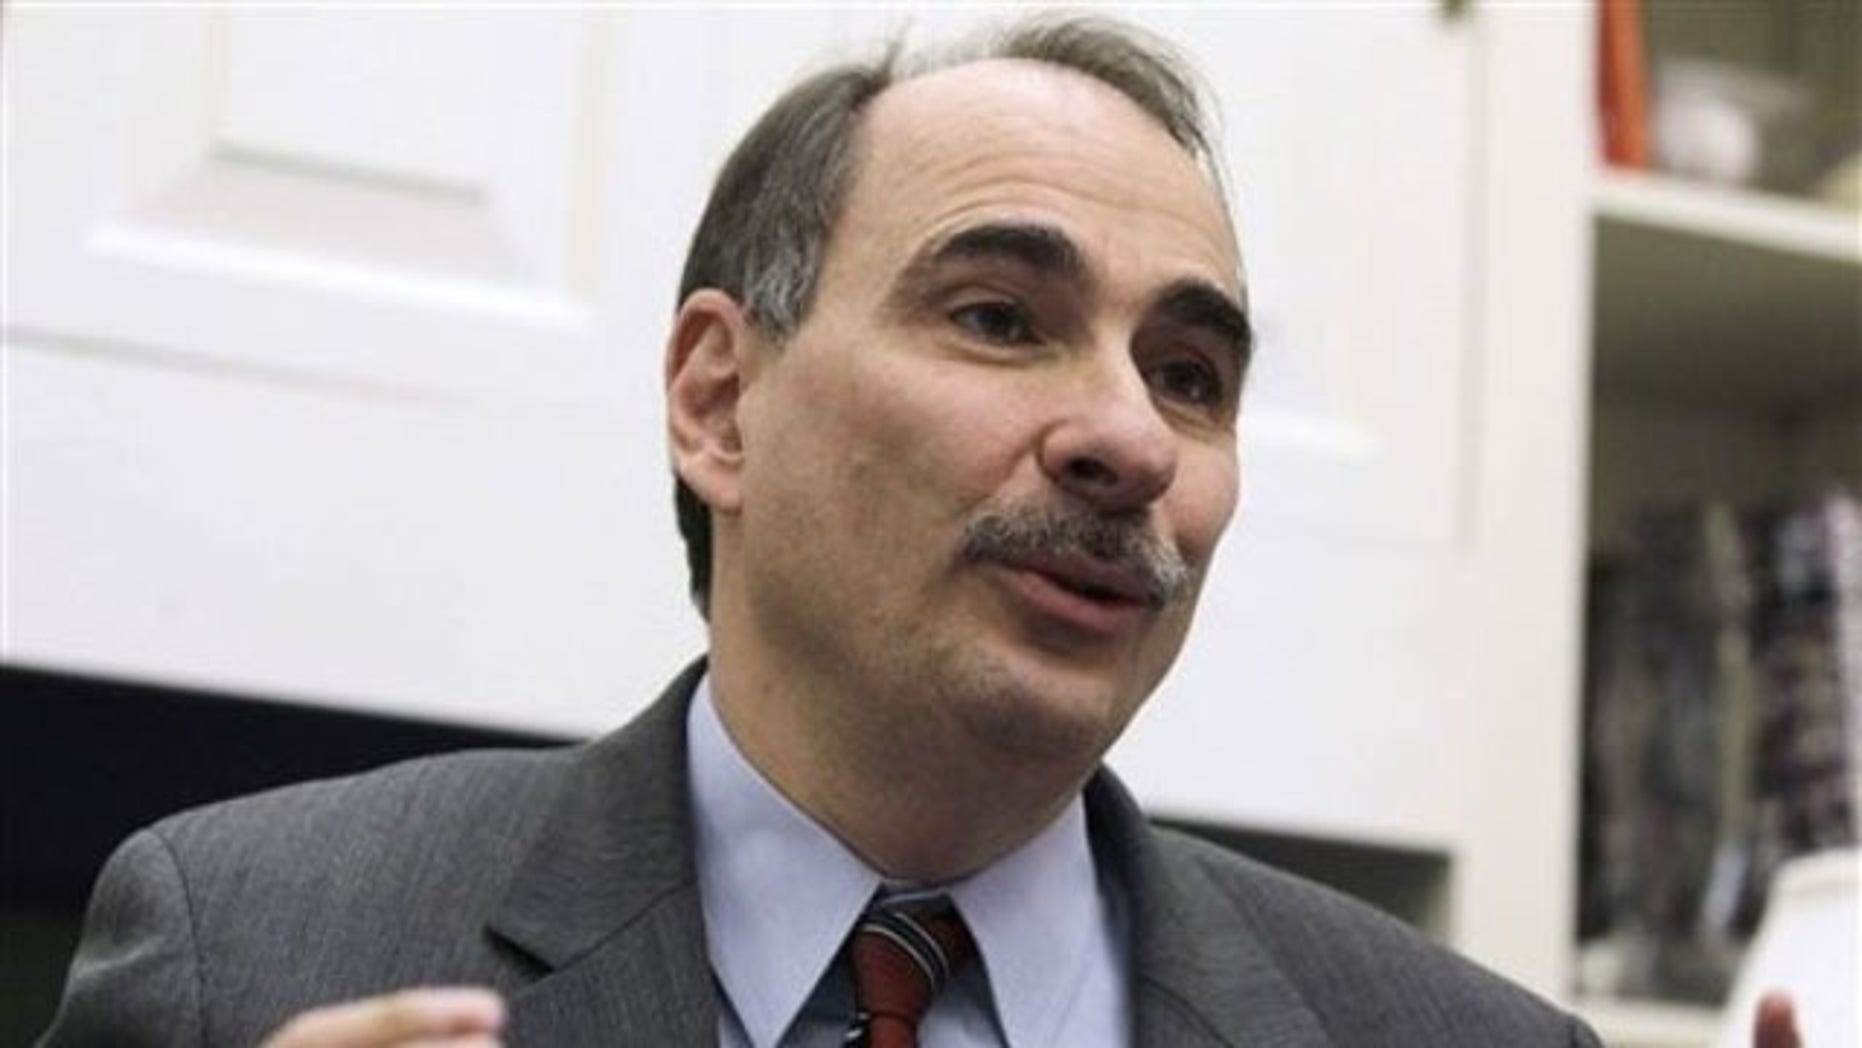 Obama advisor David Axelrod says that the U.S.credit downgrade can be blamed on the The Tea Party, who 'brought us to the brink of a default.'